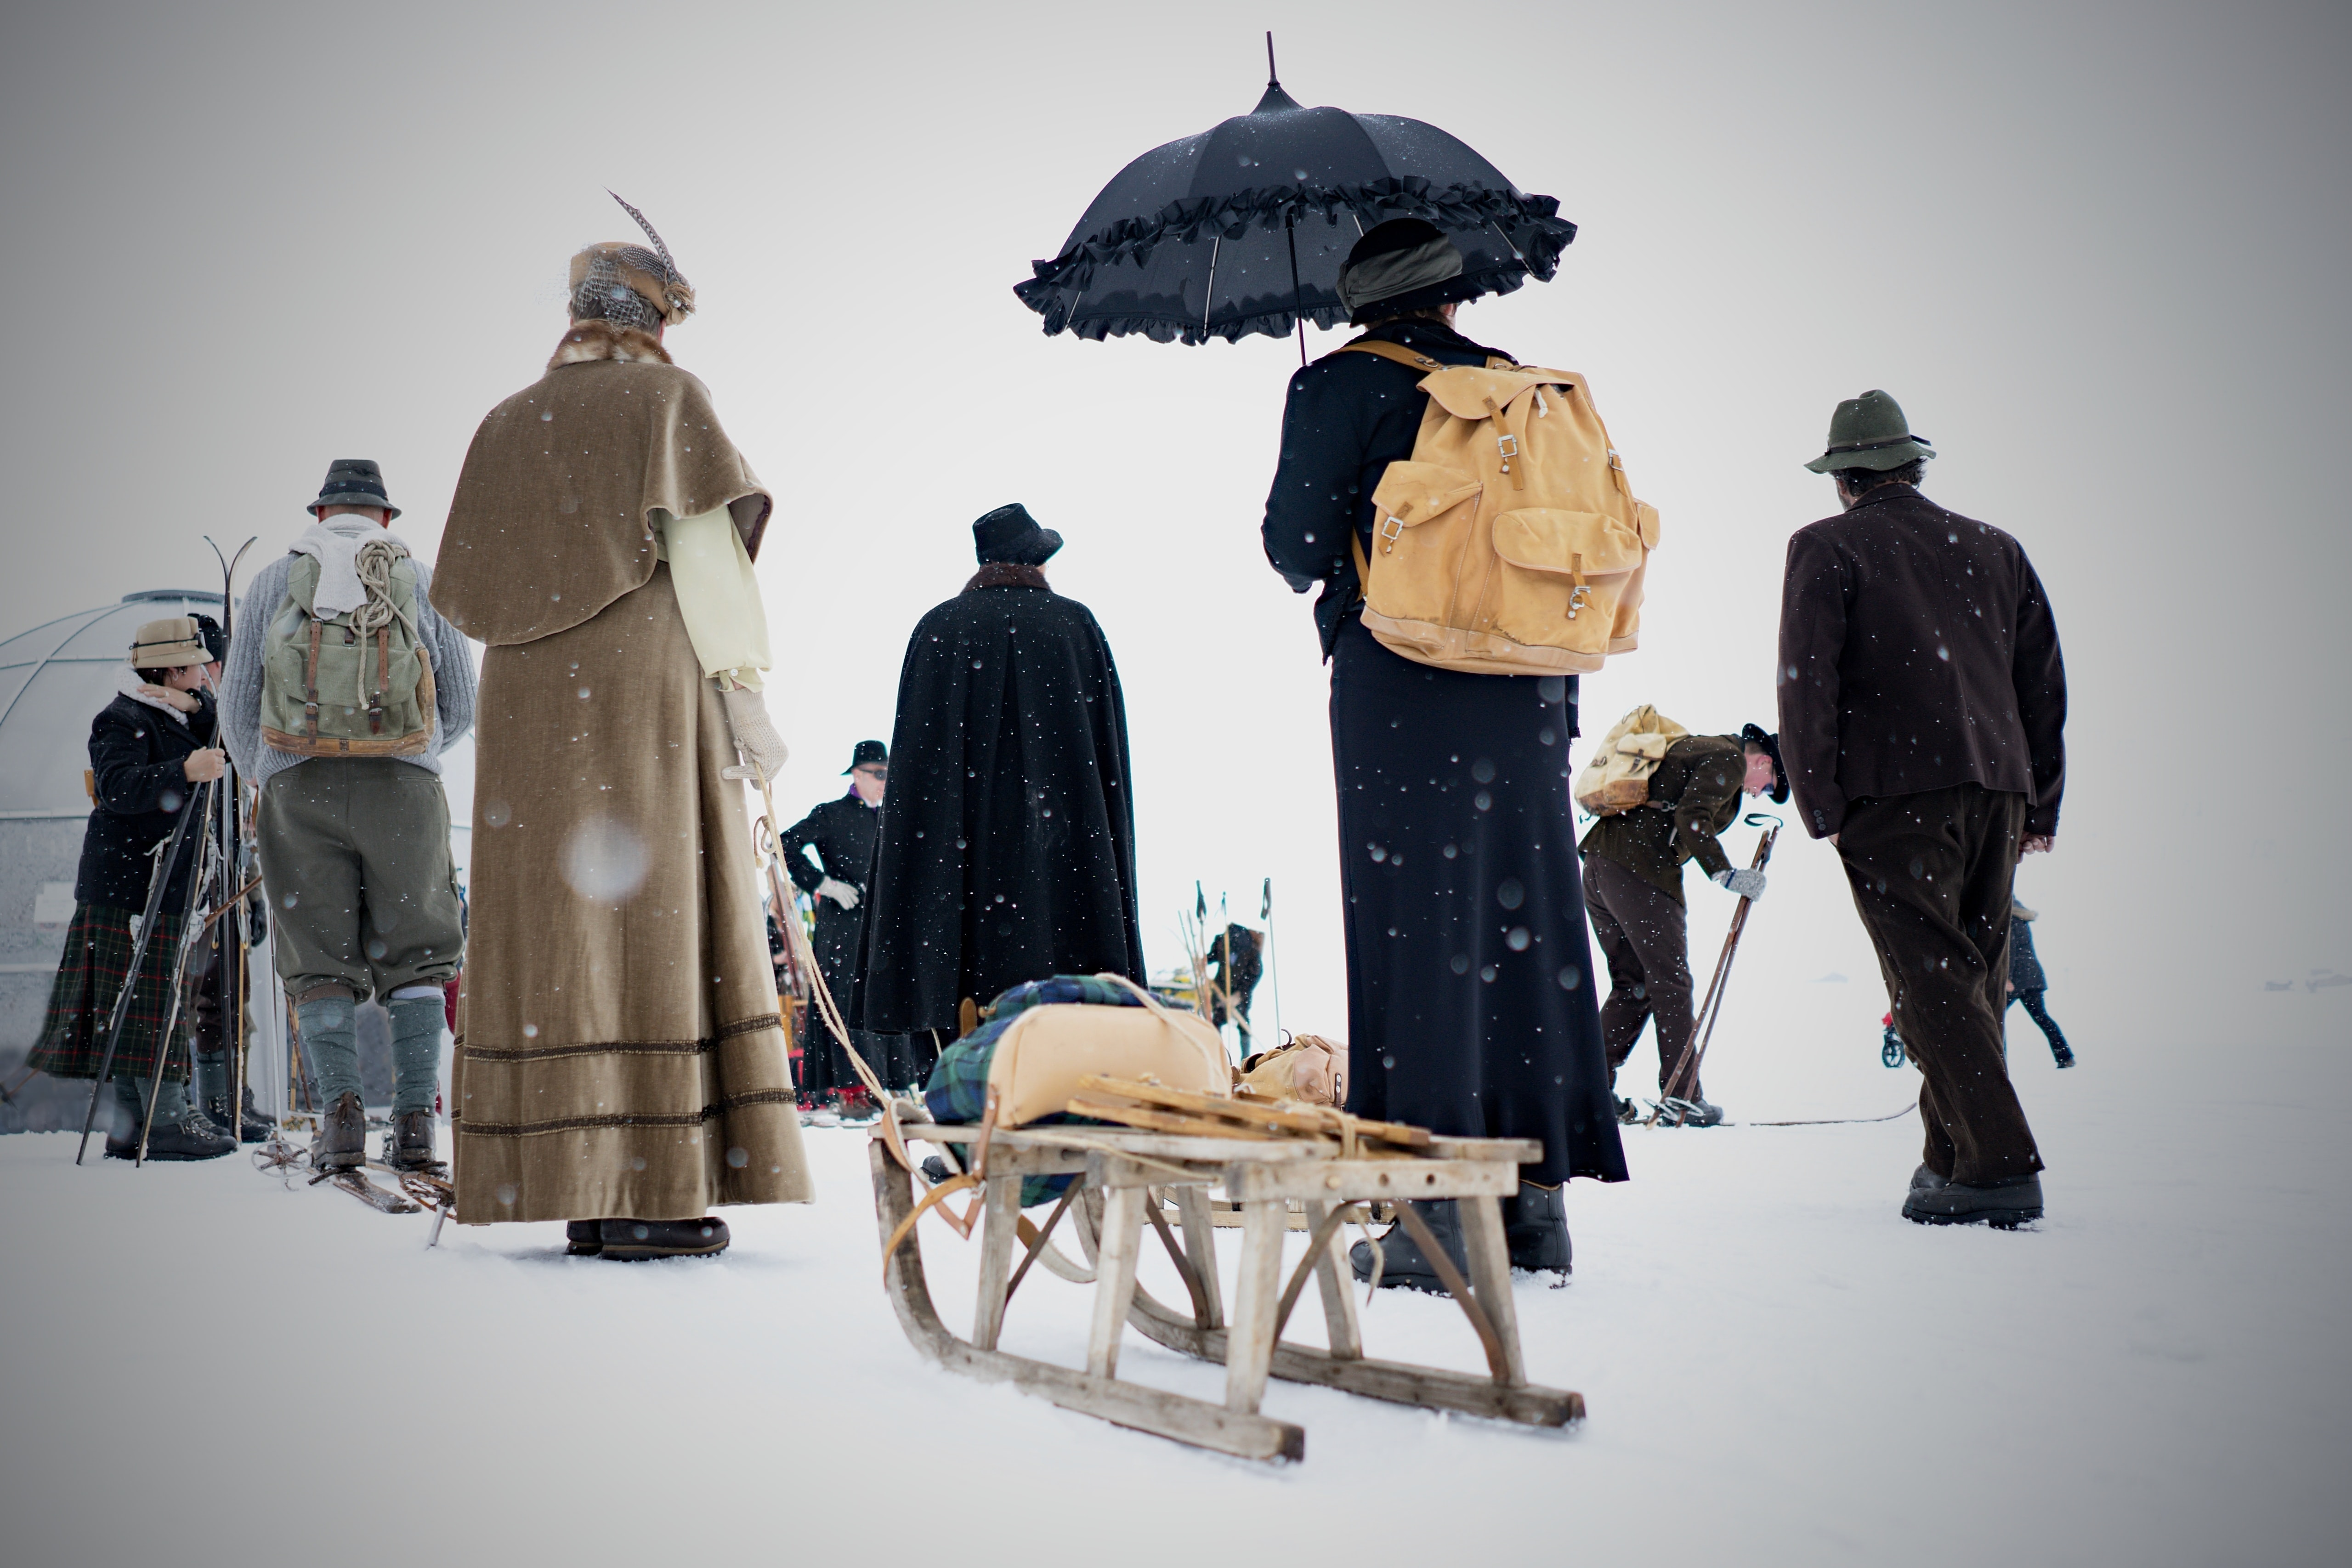 People in coats with a sled, skies, an umbrella and backpacks are traveling through snowfall